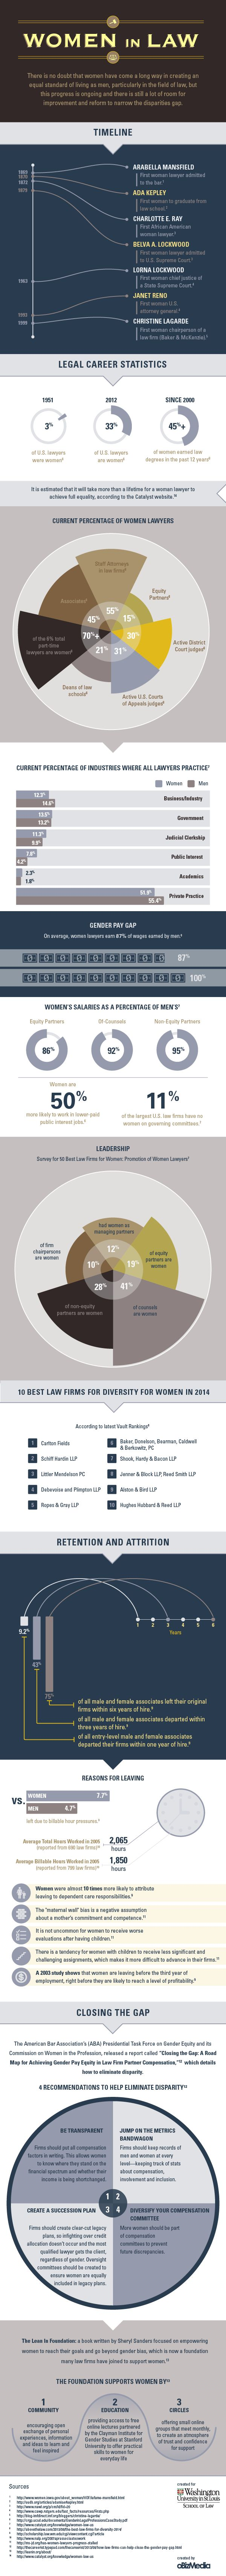 Women in Law infographic